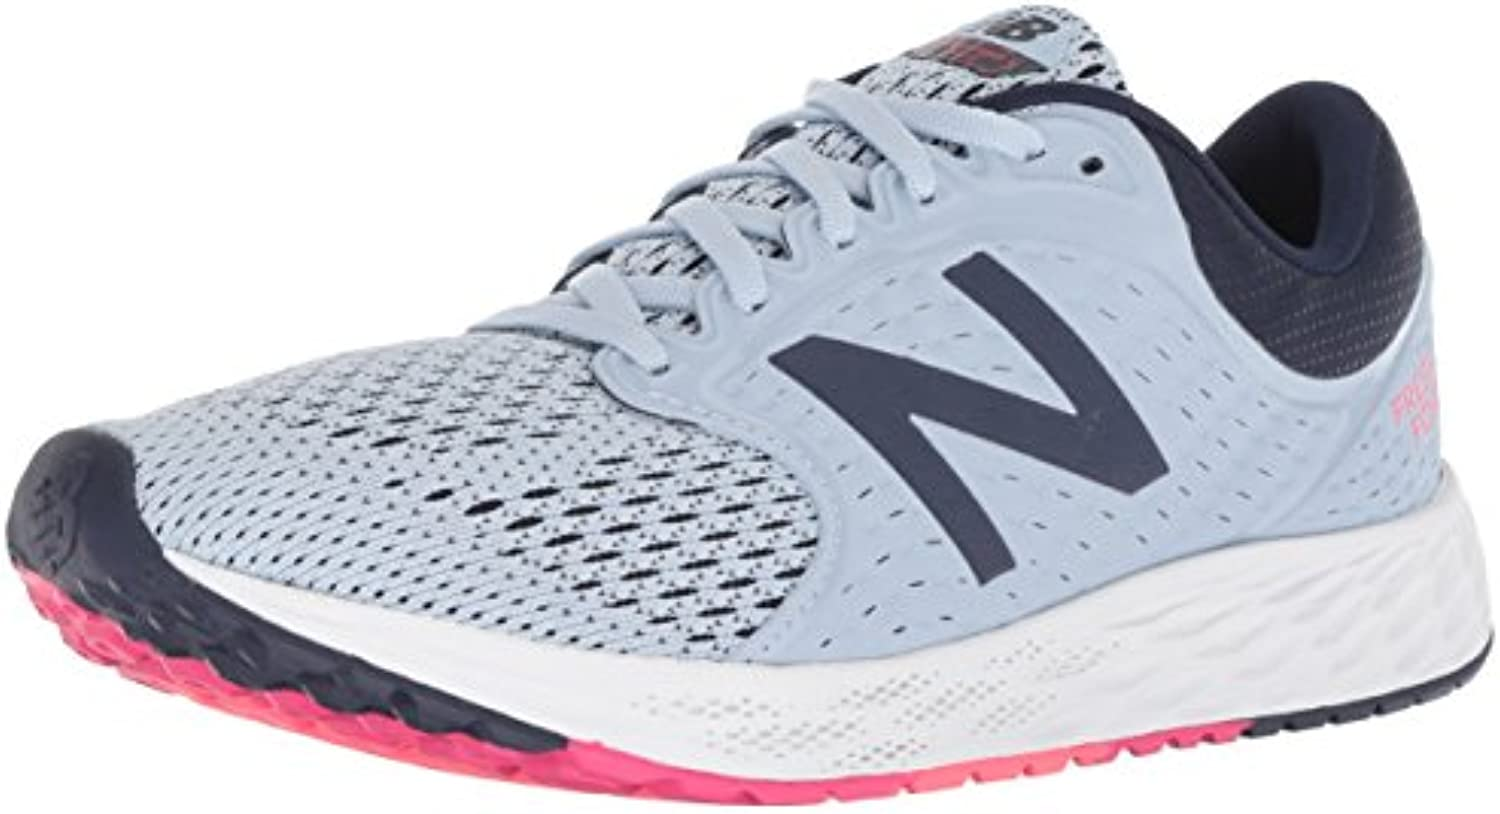 New Balance Fresh Foam Zante V4 Neutral, Zapatillas de Running para Mujer